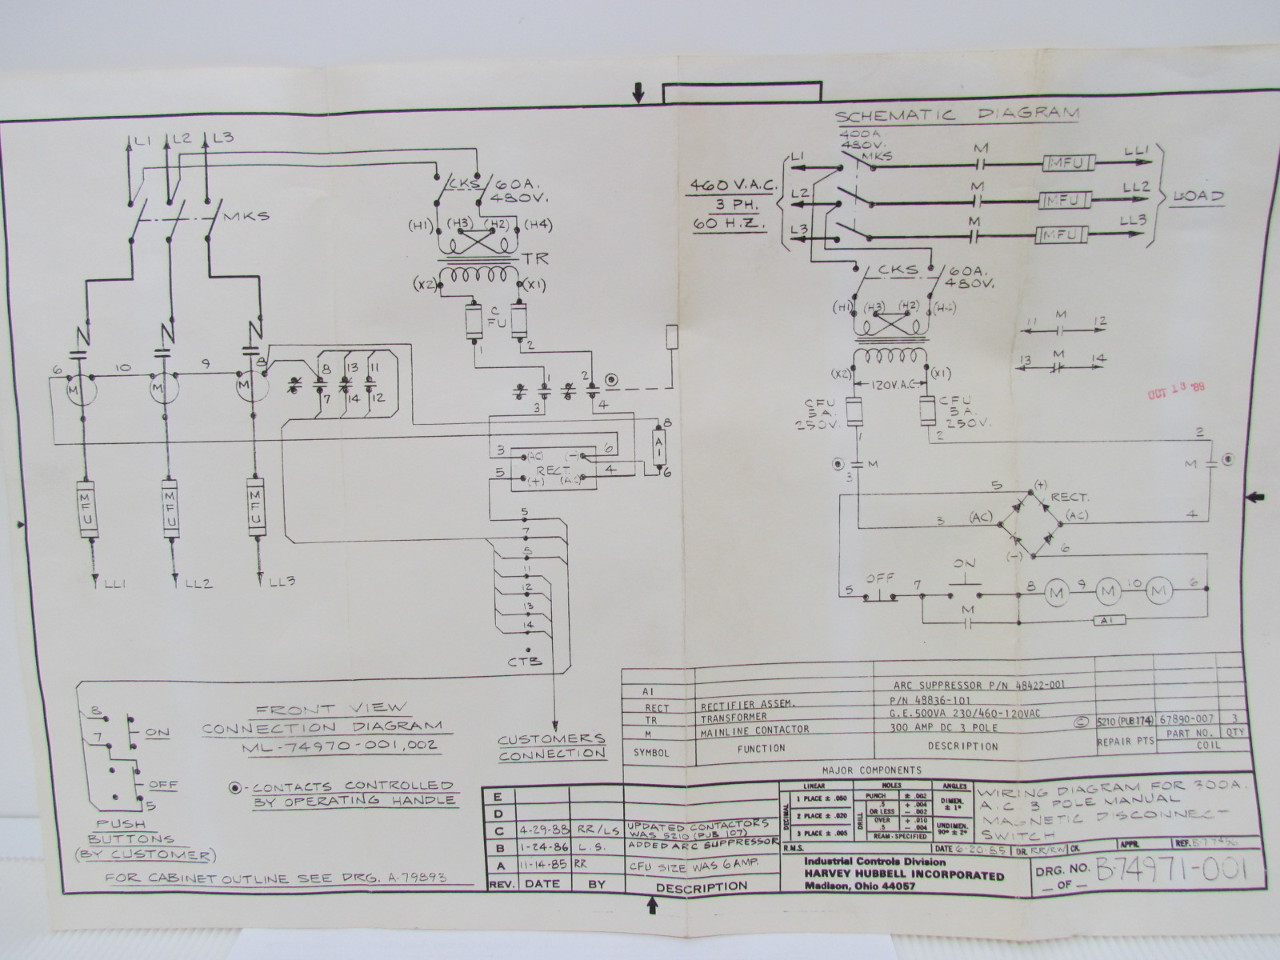 Hubbell Magnet Controller Wiring Diagrams Hubbell Industrial Controls Industrial Controls